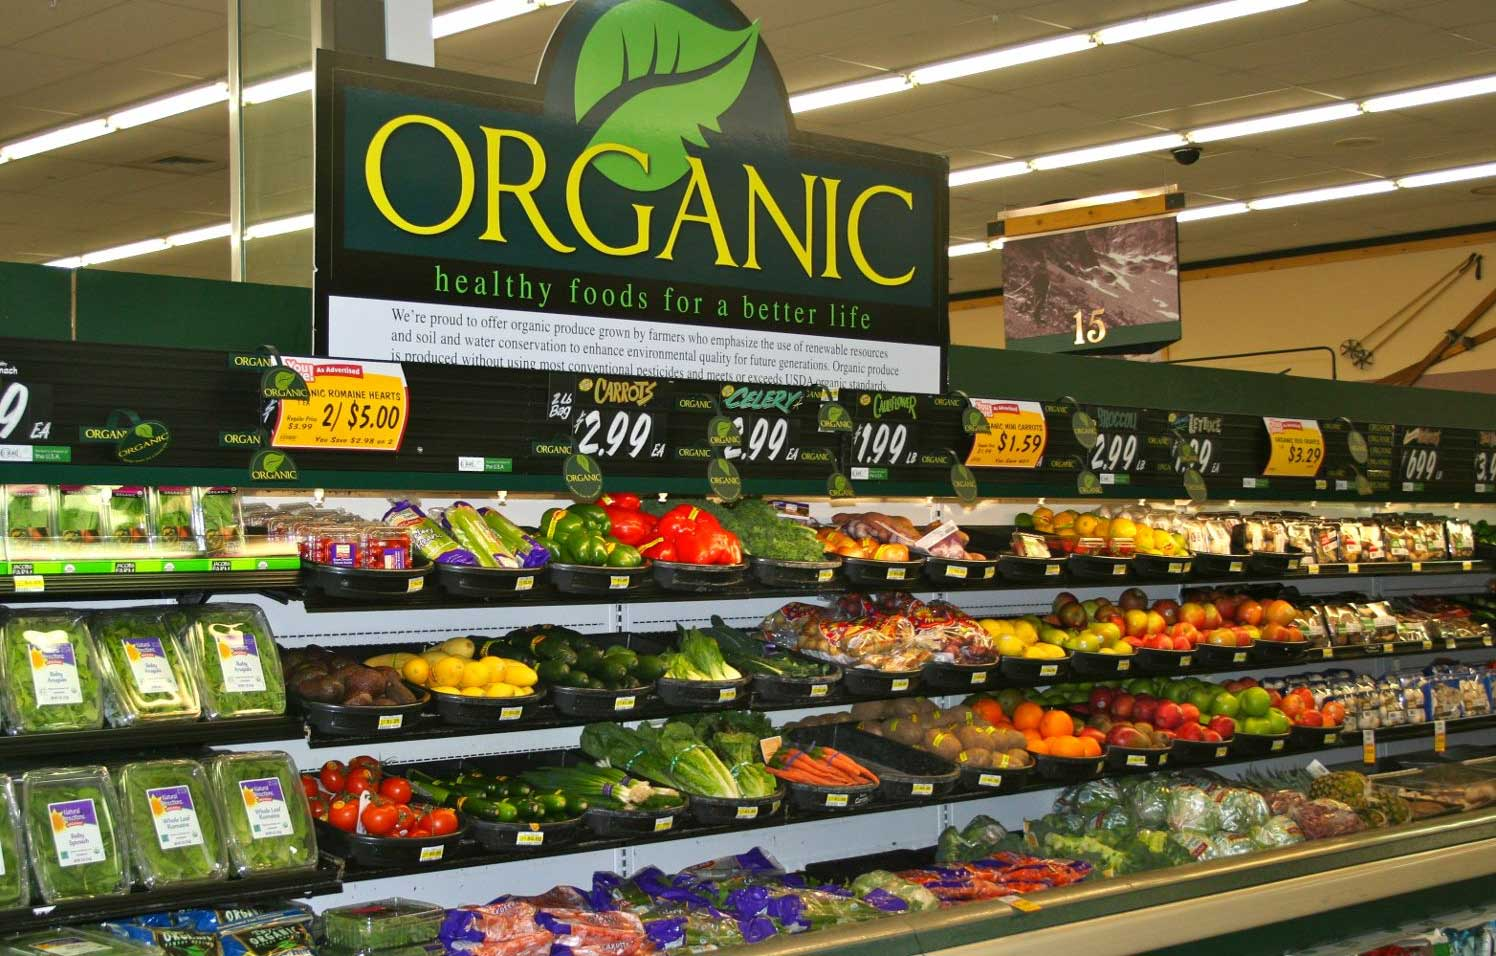 Eating Organic Food Reduces Risk Of Some Cancers Controversial